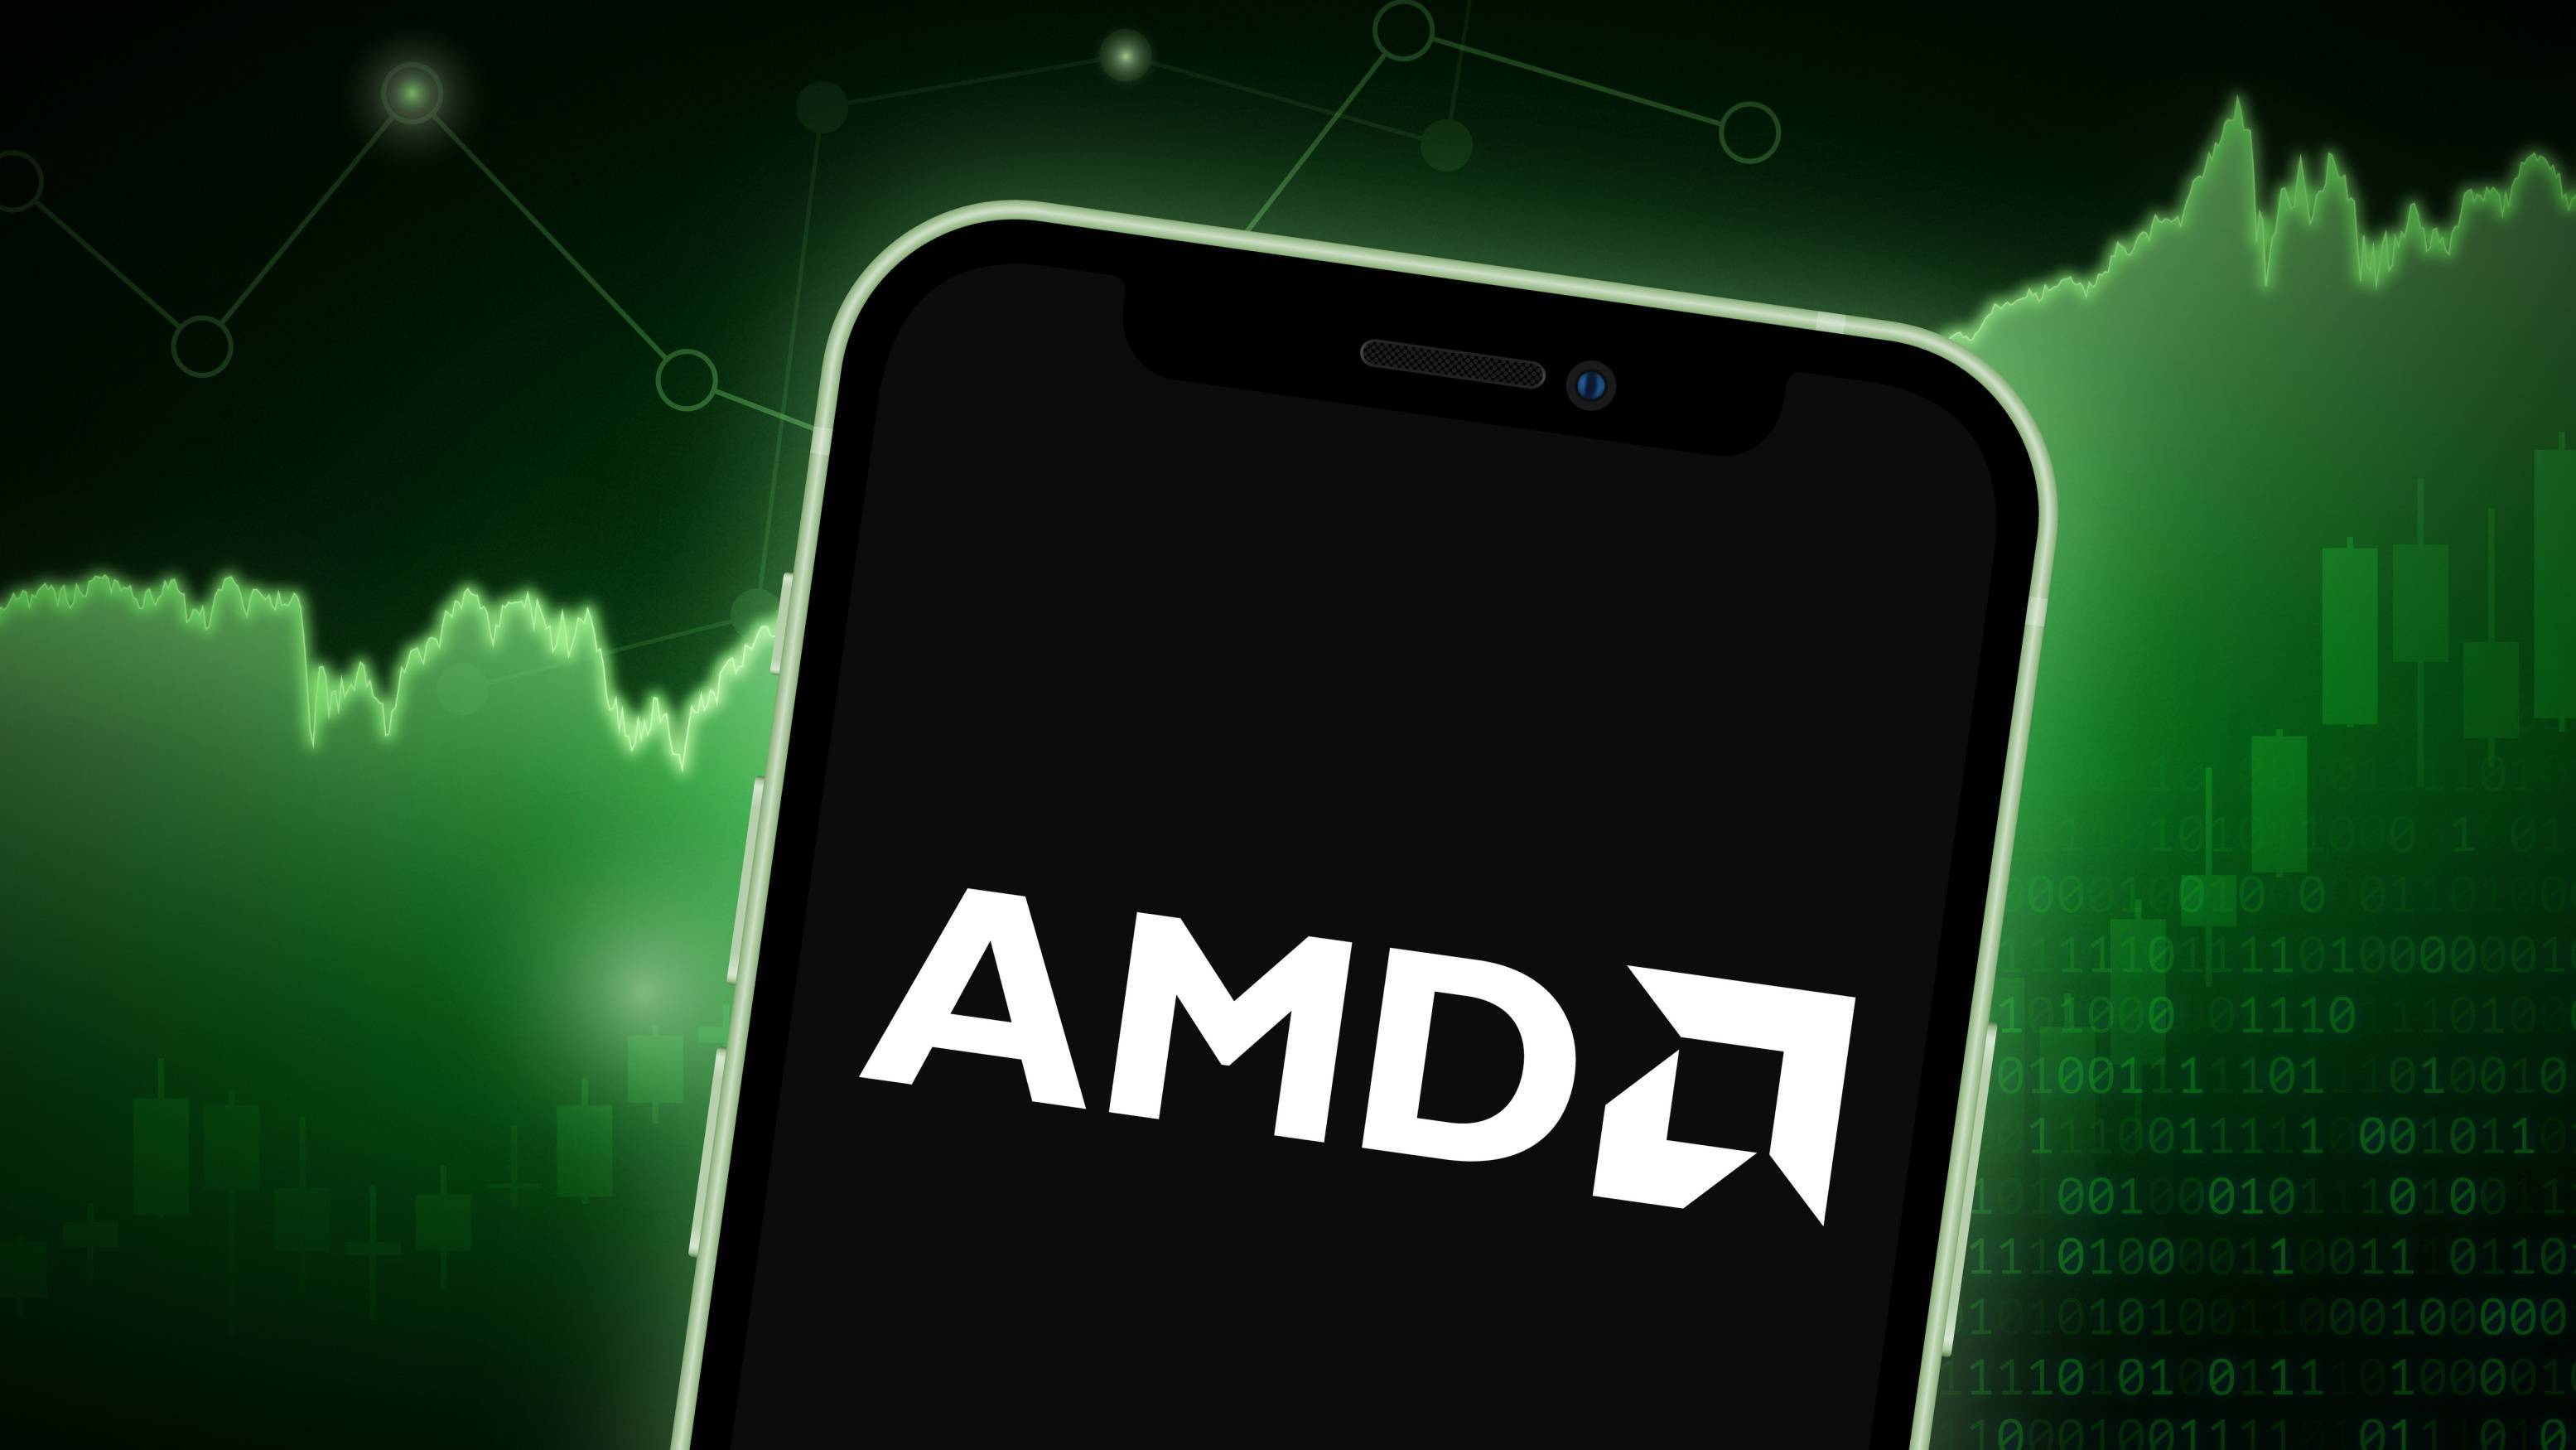 AMD stock forecast (NYSE:AMD): Is now the time to buy AMD?